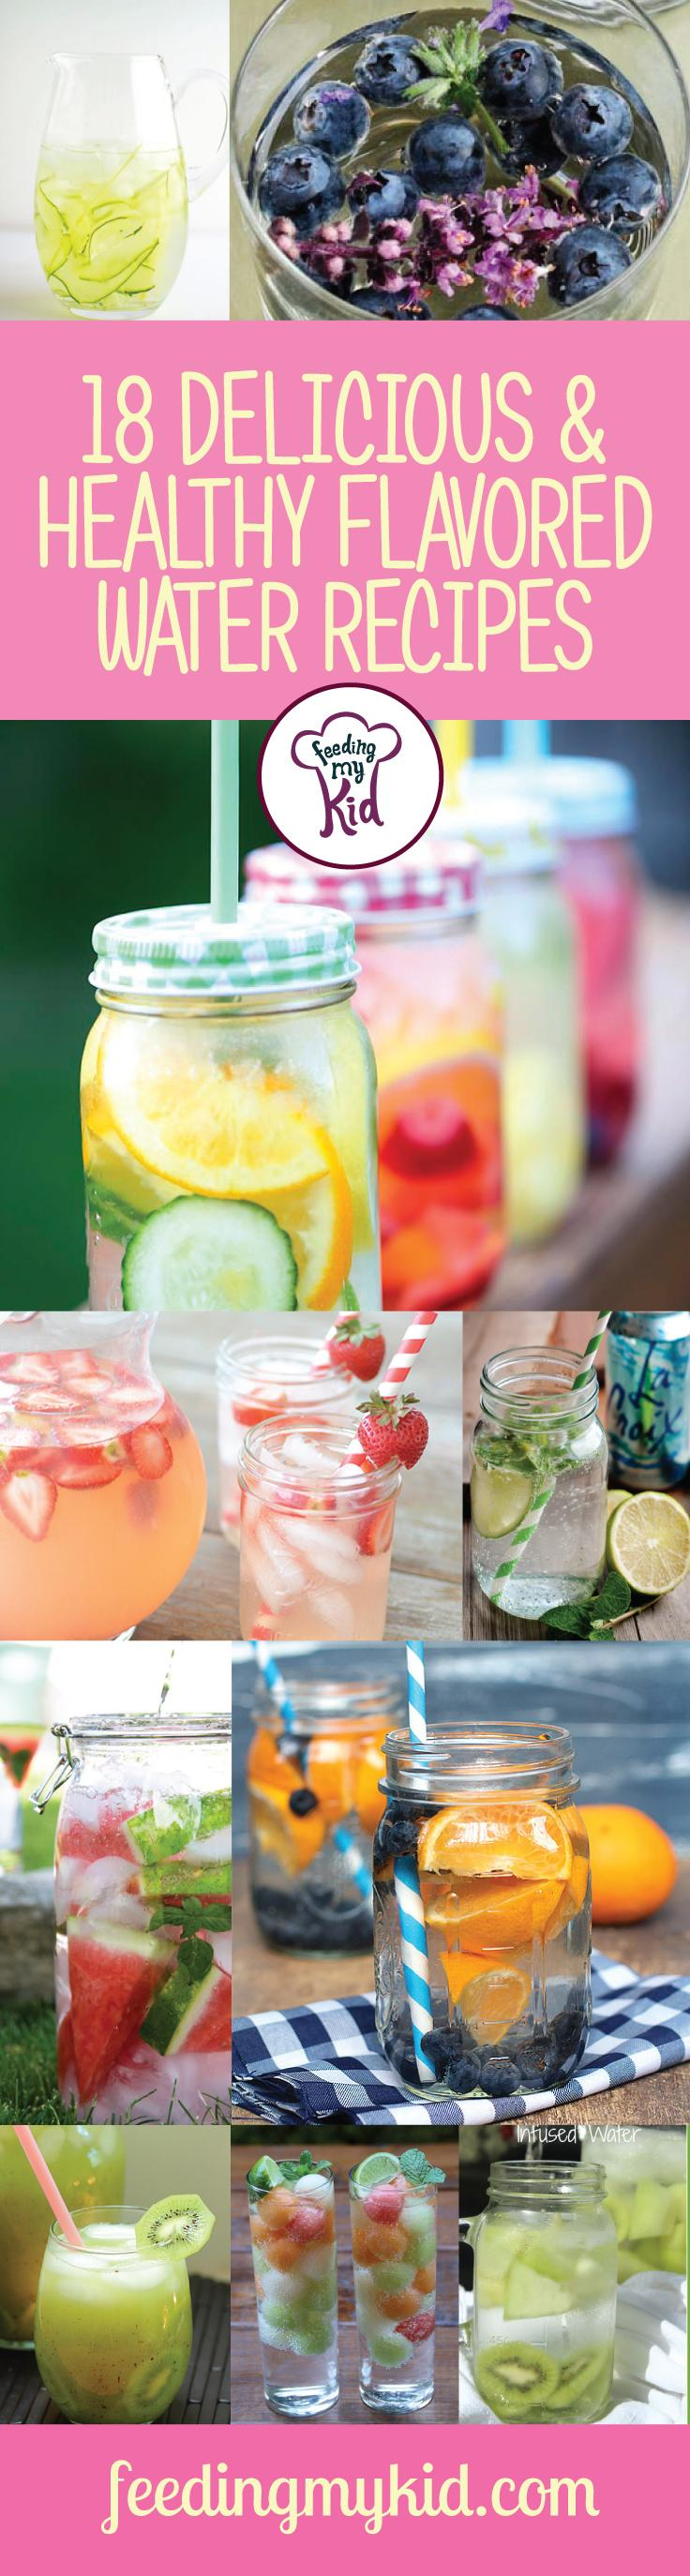 18 Delicious & Healthy Flavored Water Recipes - This is a must pin! Spring is here and summer isn't too far on it's way. Sometimes, it's nice to have something tasty and refreshing with a twist. These flavored water recipes are good for any season, but they do make spring and summer all the better. From honeydew and kiwi infused water to citrus bliss infused water; everyone will love these! This must share! #fmk #flavoredwater #recipes